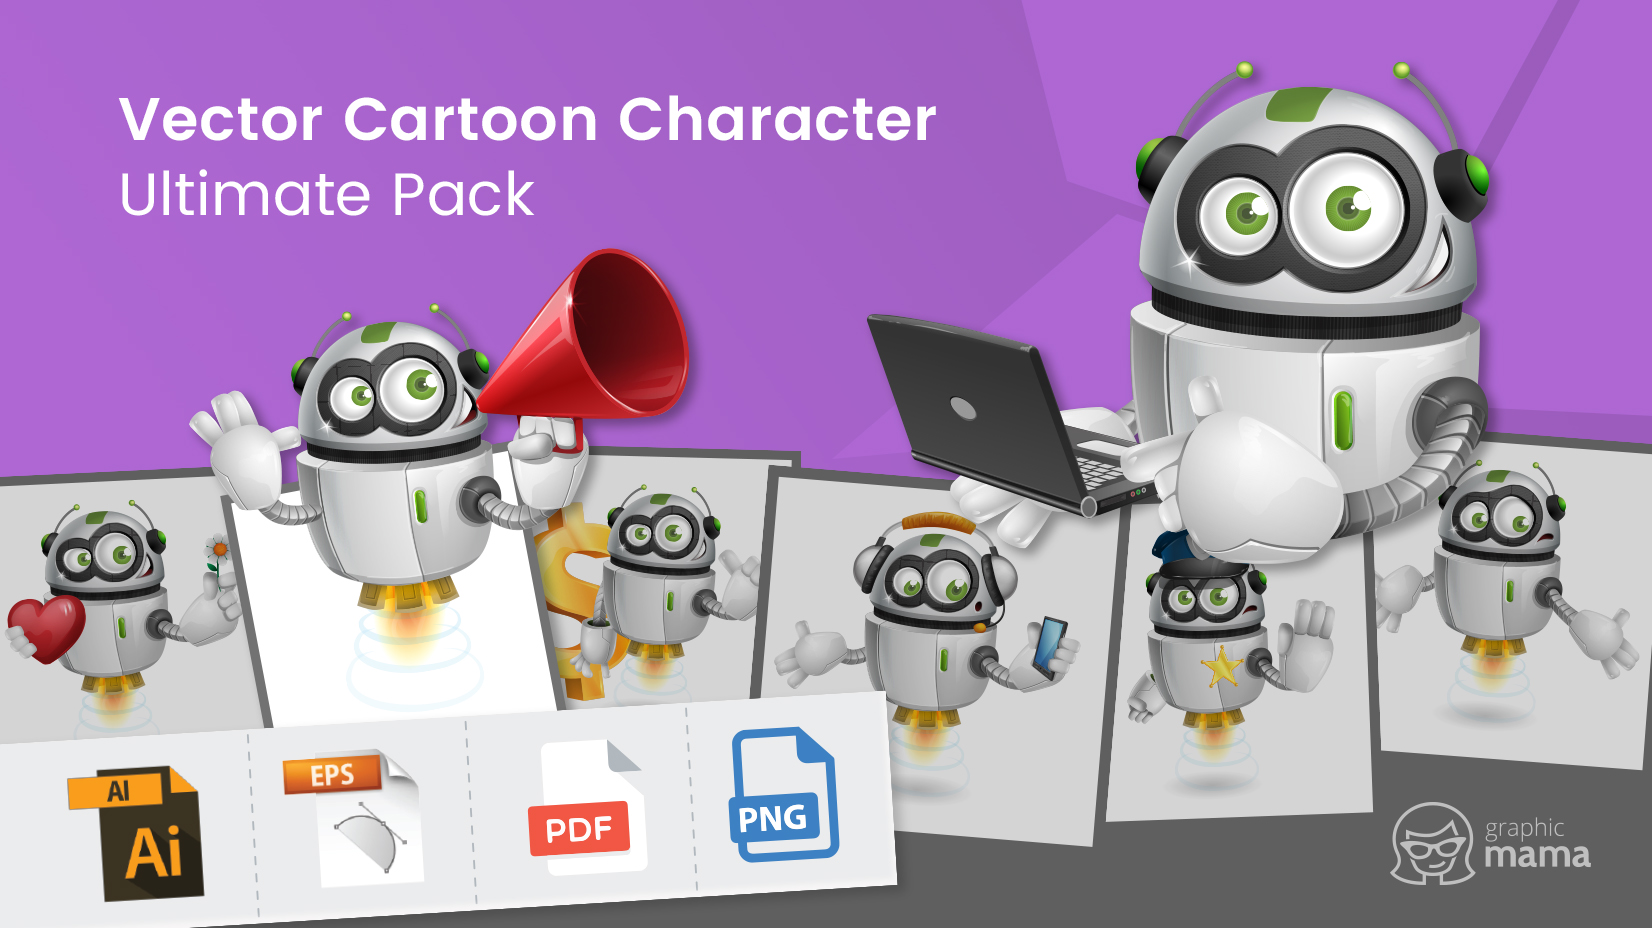 1652x928 Vector Cartoon Character Ultimate Pack By Graphicmama From A To Z